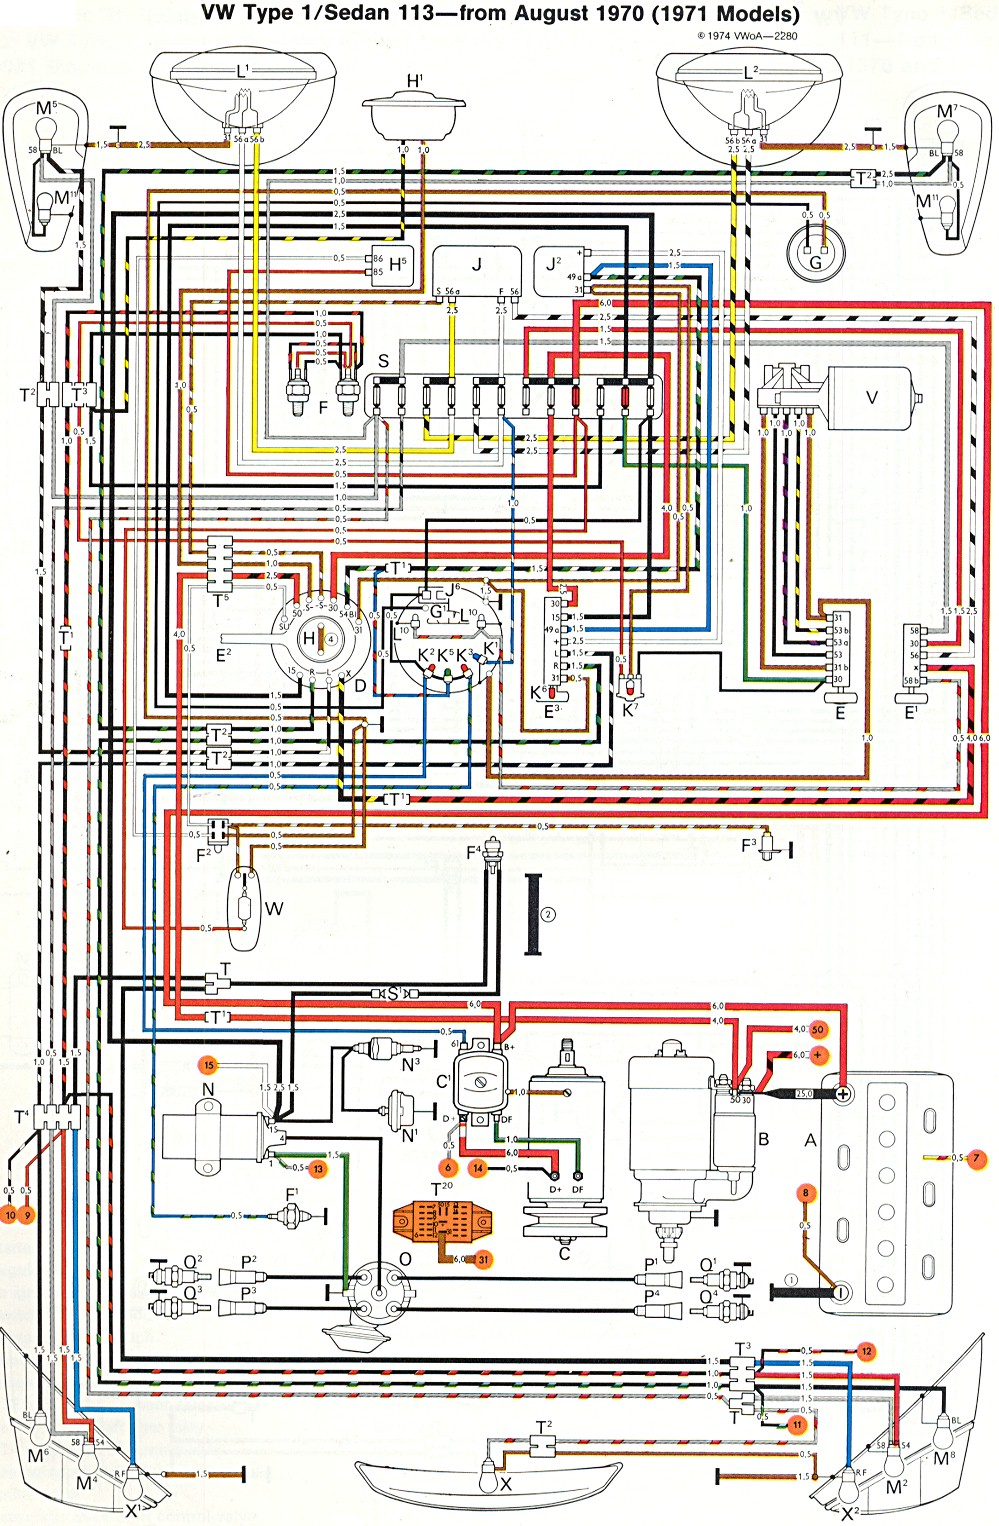 bug_super_71 1971 super beetle wiring diagram thegoldenbug com volkswagen 2002 beetle wiring diagram at gsmx.co